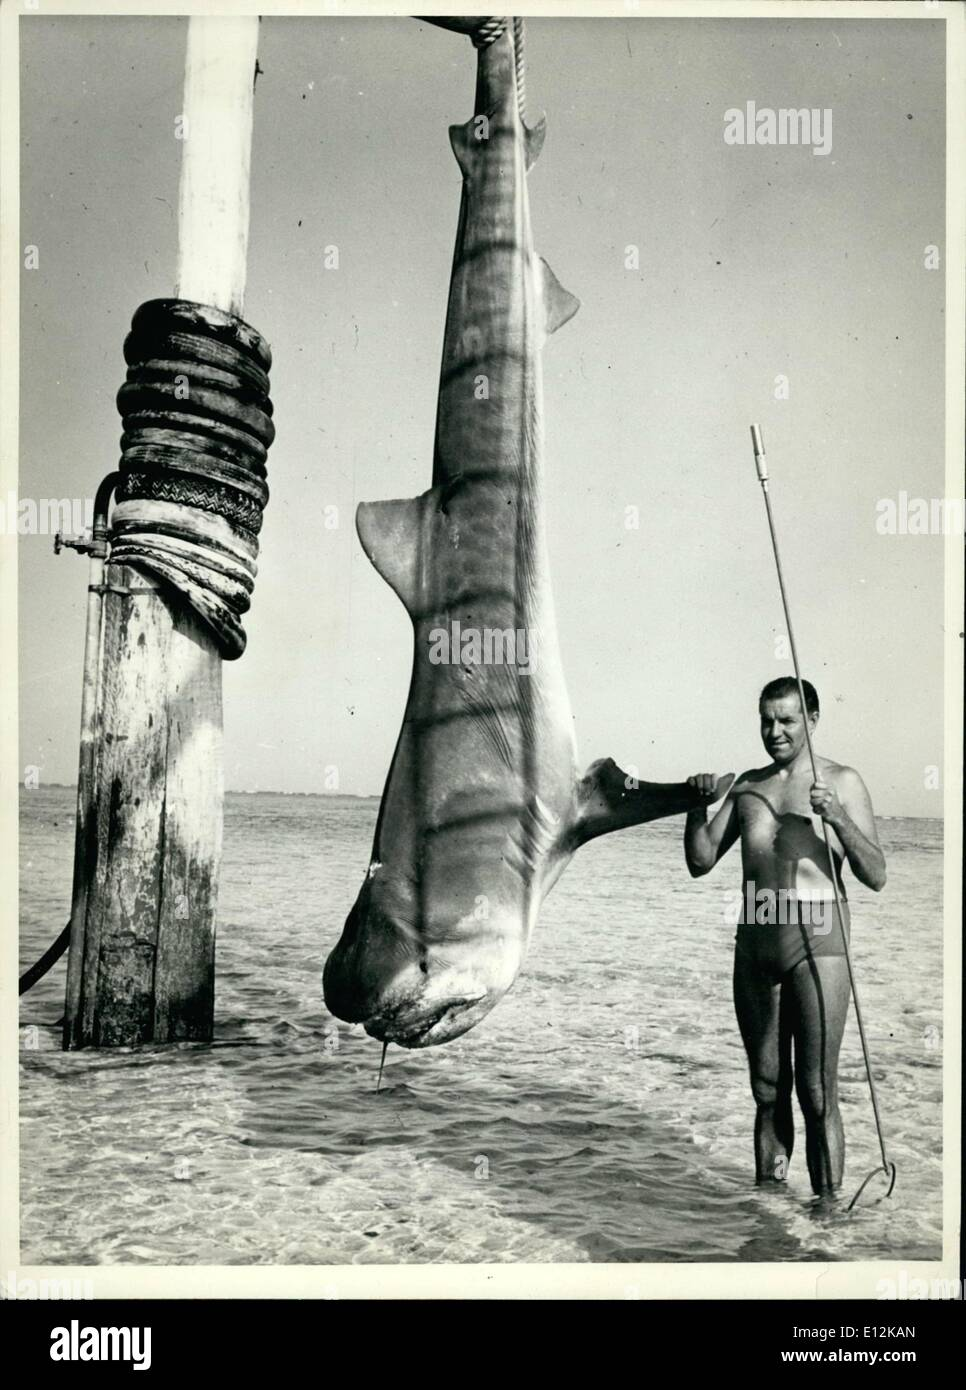 Feb. 24, 2012 - Wally Gibbins and his lift, 800 lb Tiger Shark he killed with a 10 range shotgun at Sykes Reef near Heron Is Old, the largest shark ever killed by shotgun or underwater. - Stock Image